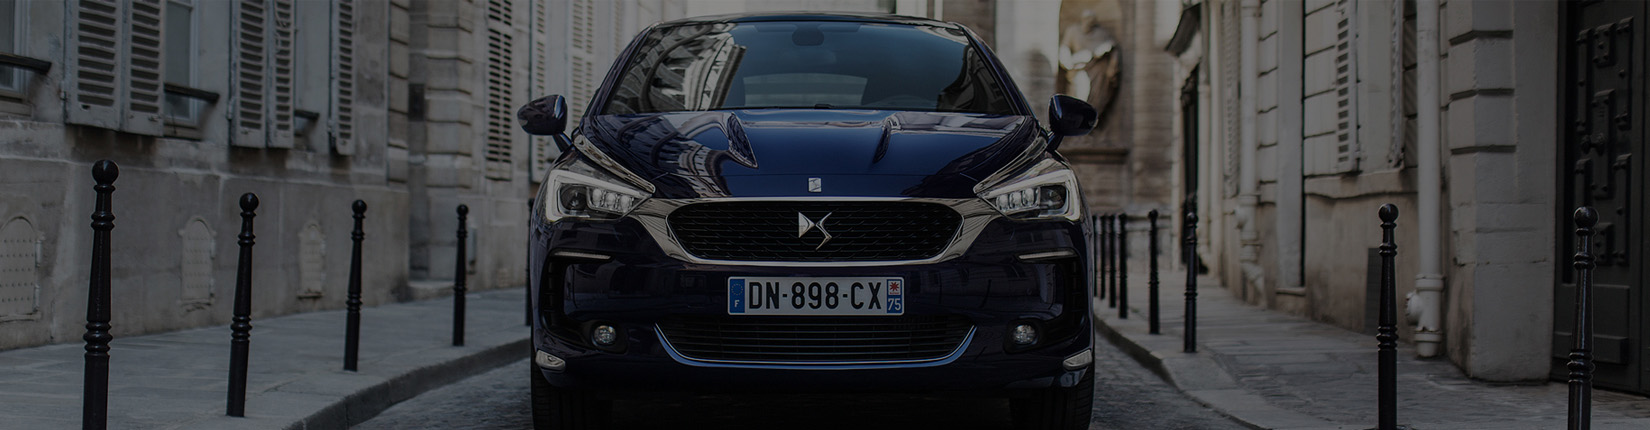 DS5 Front Imaage - DS Automobiles UK